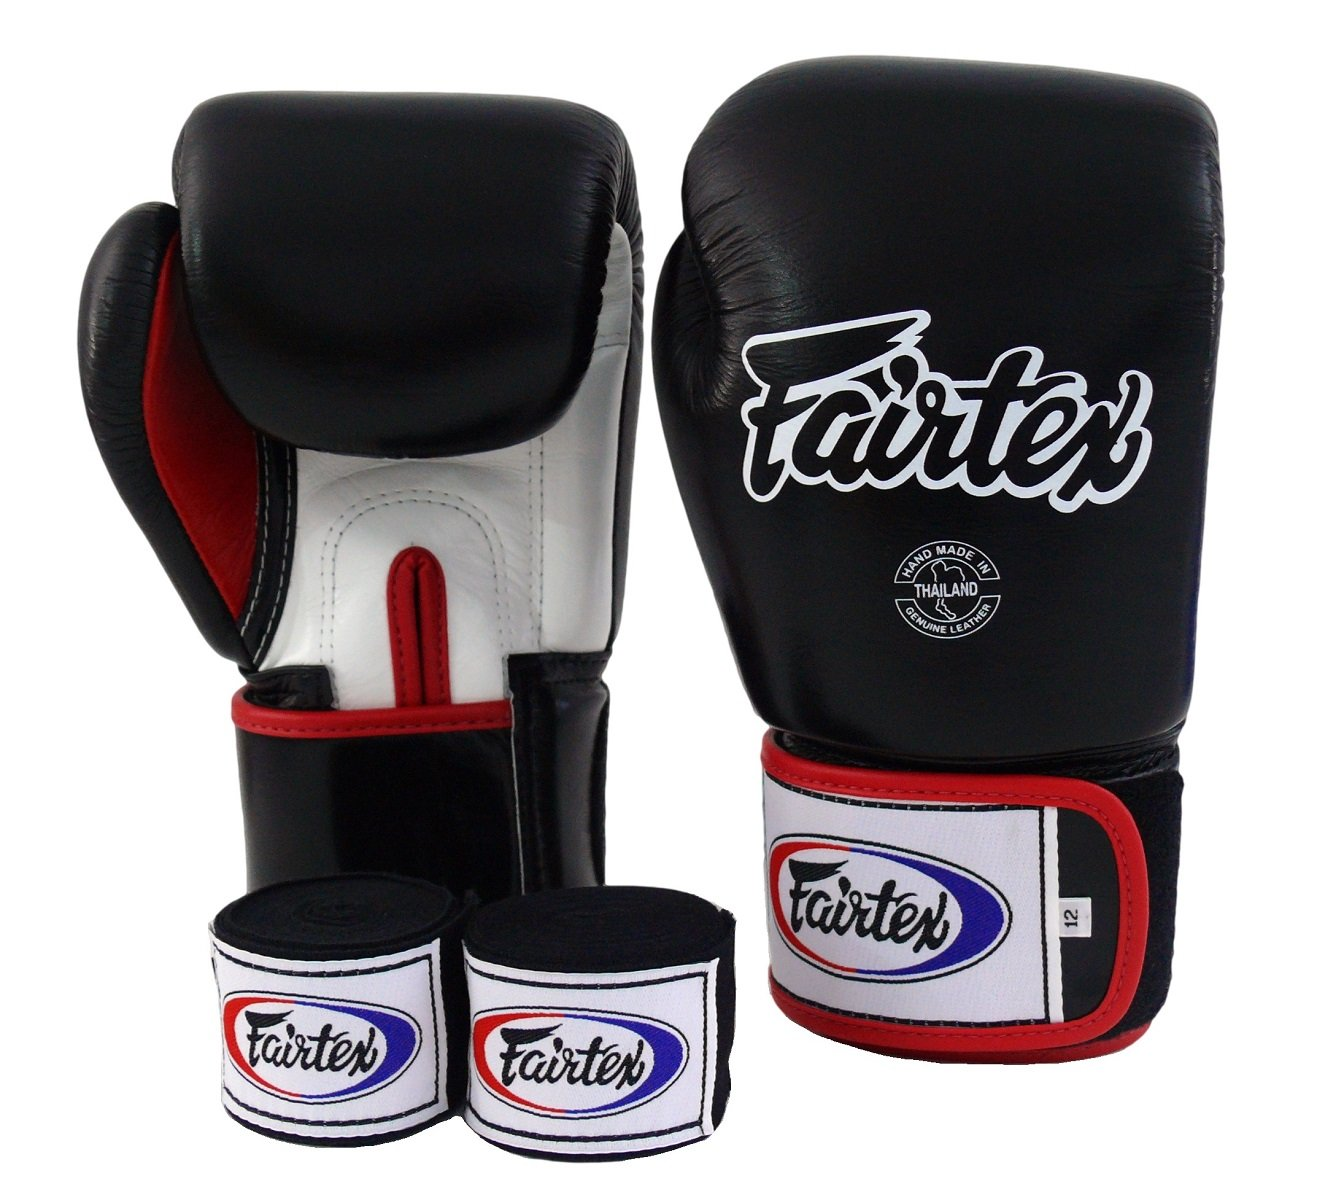 Top 16 Best Boxing Gloves (2020 Reviews & Buying Guide) 11